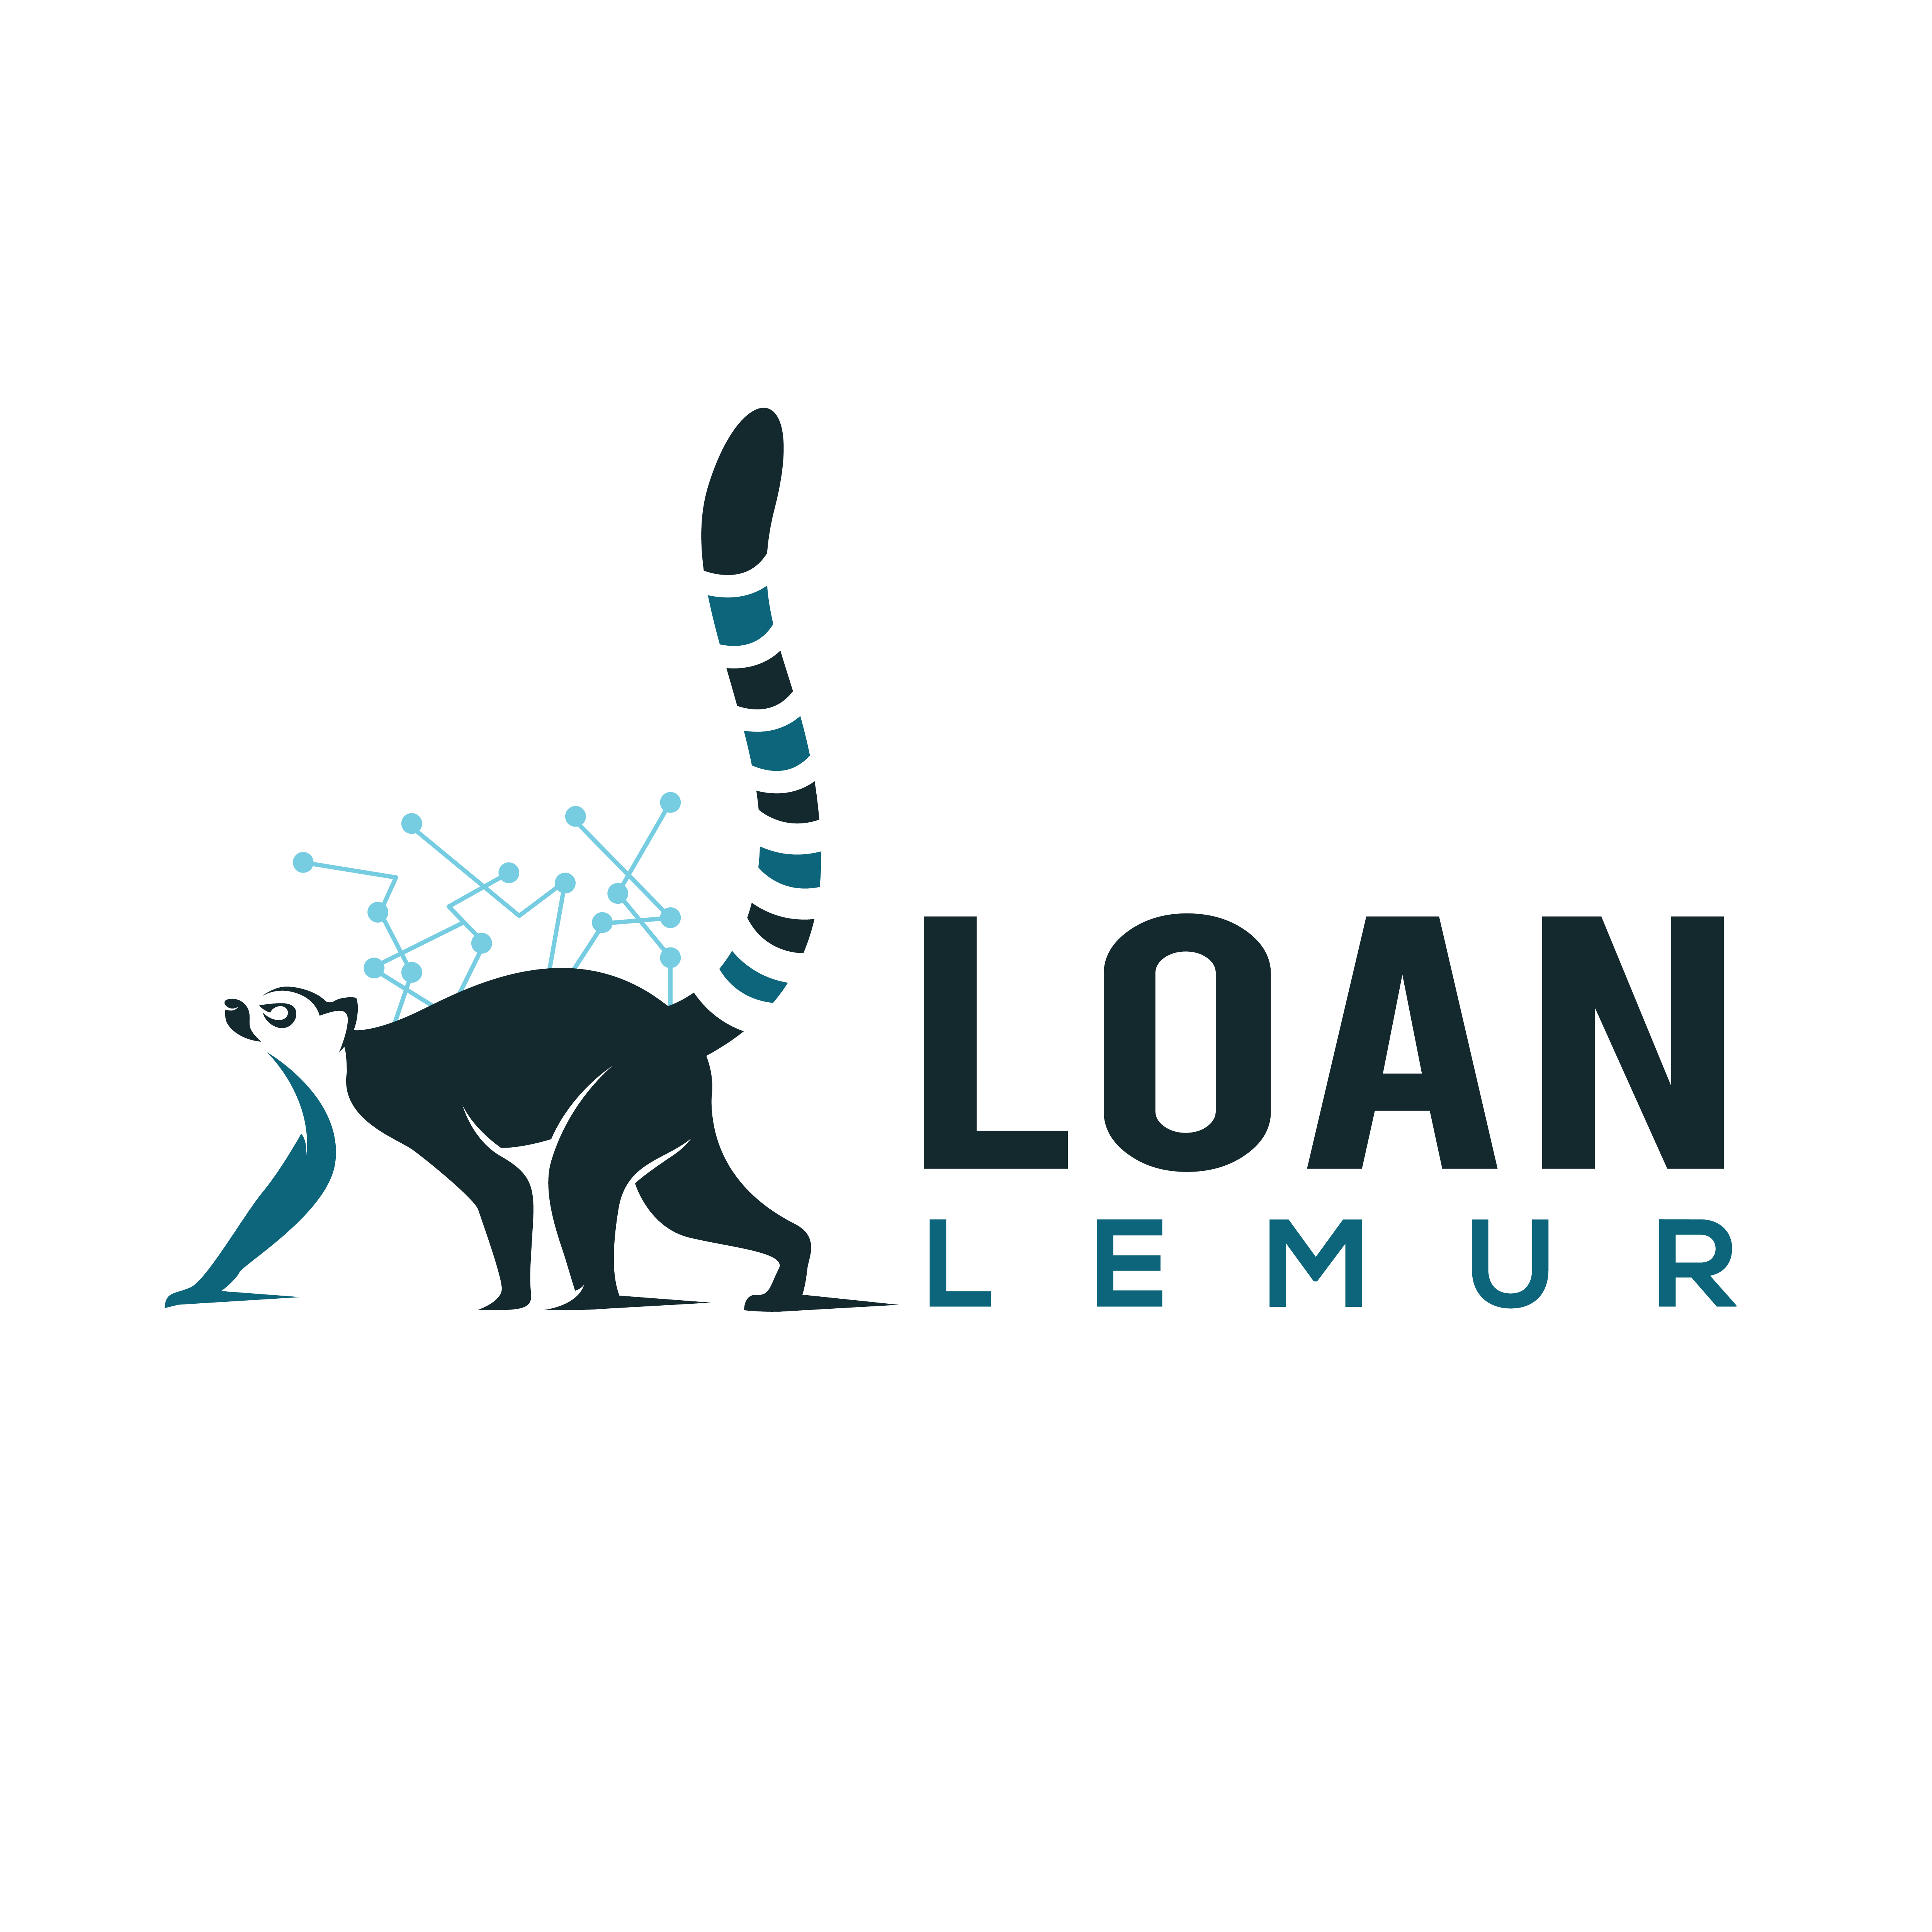 Create a logo for LoanLemur that is quirky enough to stand out, but classy enough to attract bankers